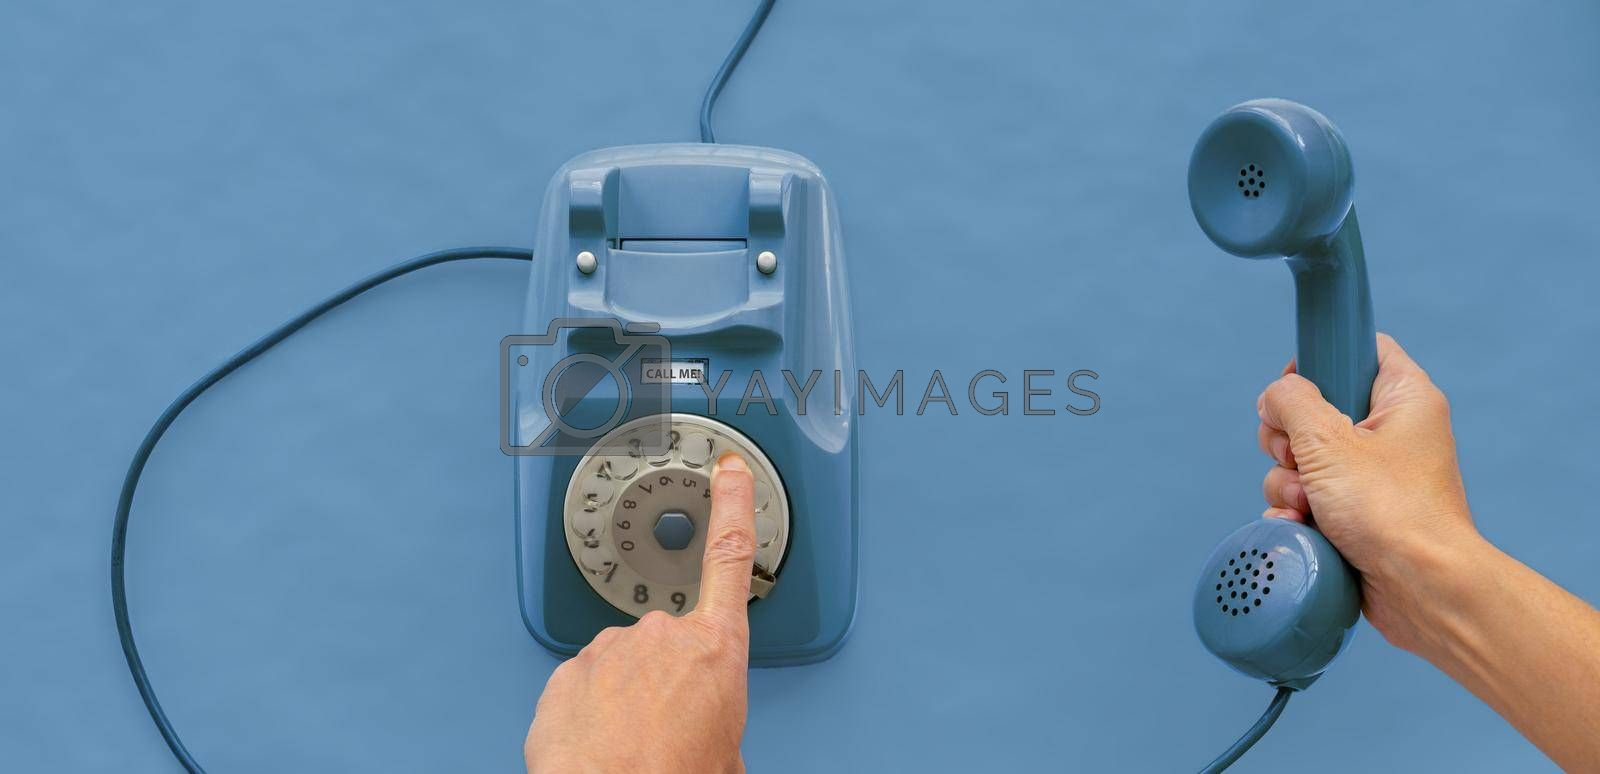 Royalty free image of A vintage dial telephone handset with one hand and background.  by maramade